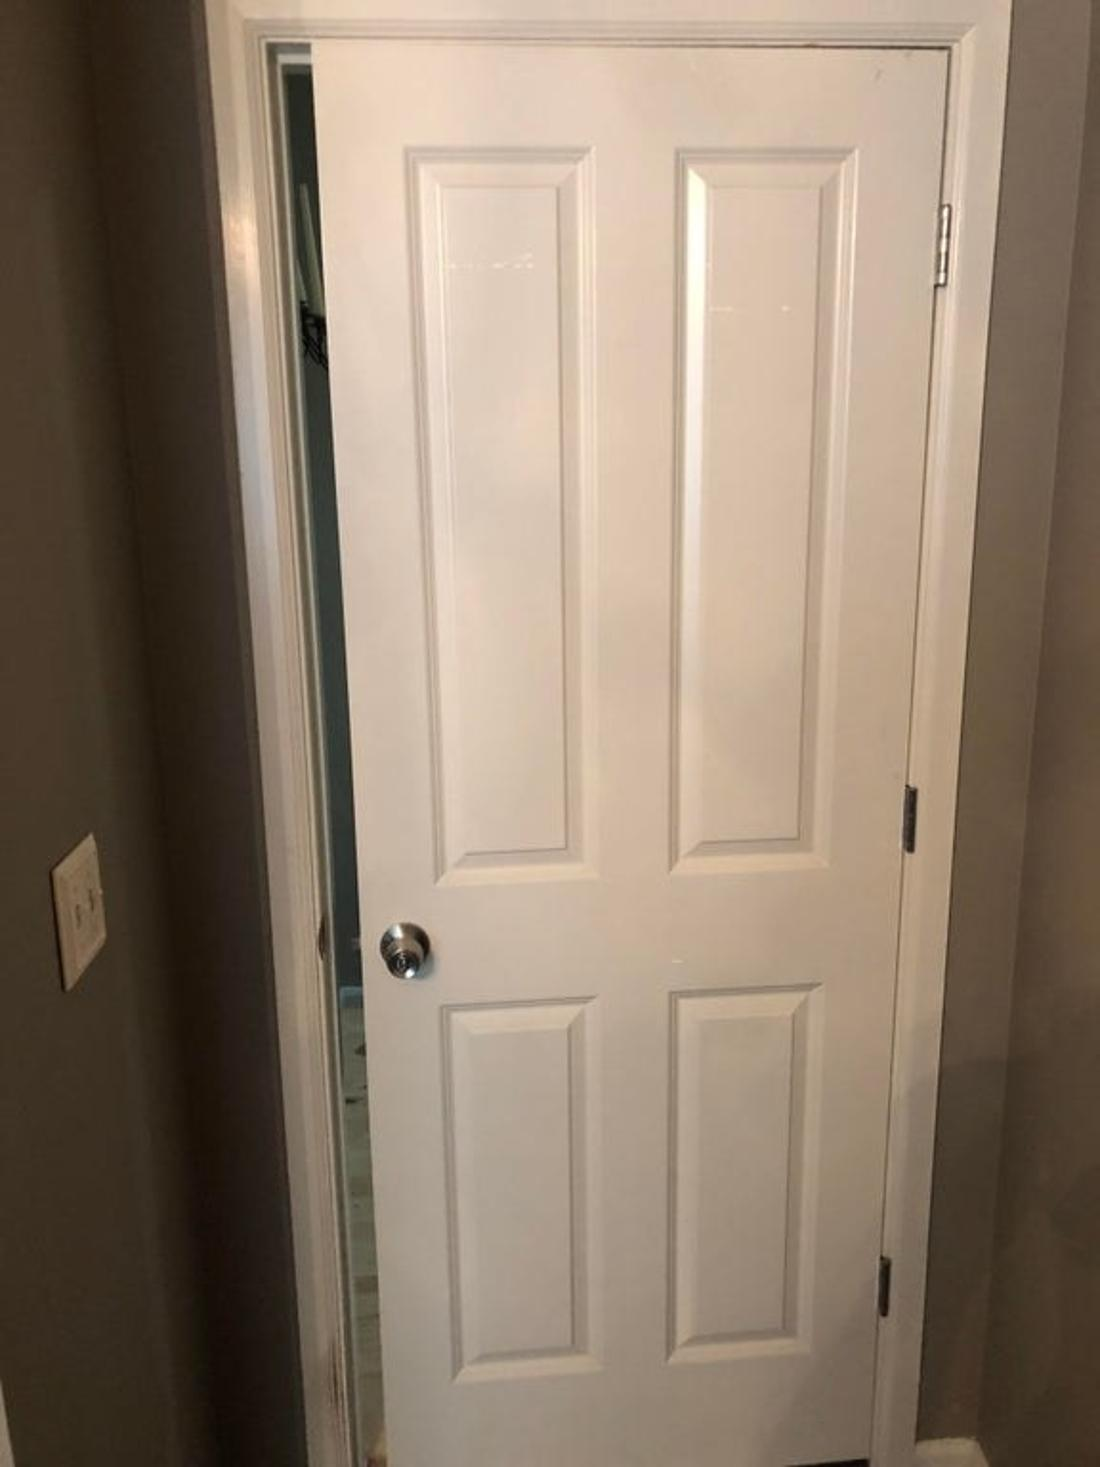 door that is too small for a frame